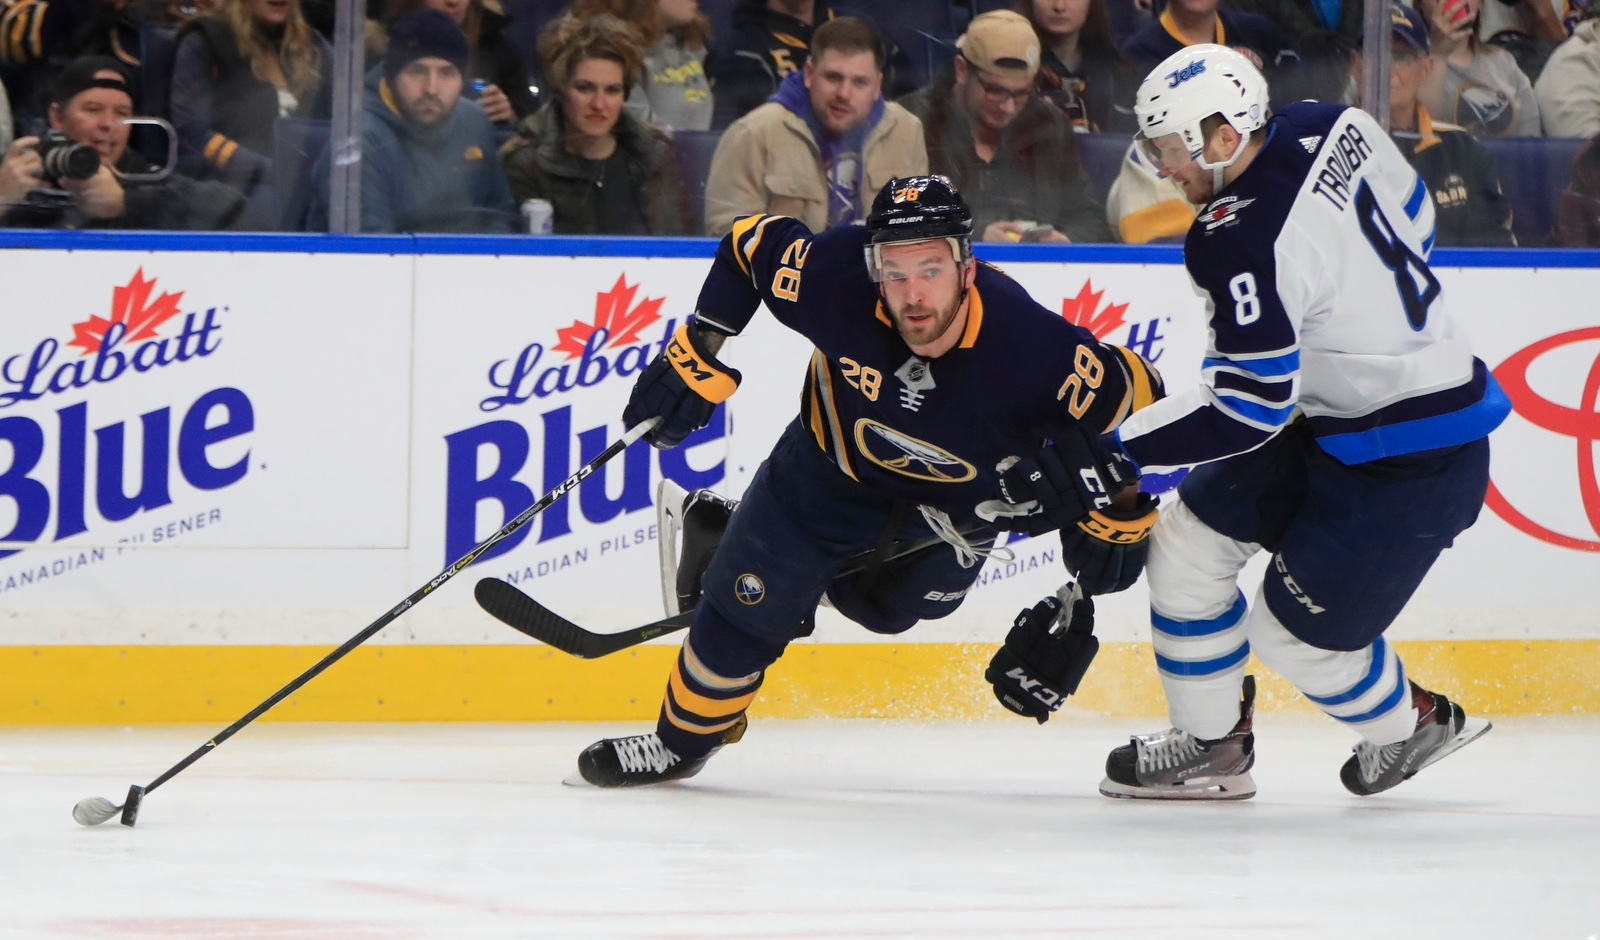 Buffalo Sabres' Zemgus Girensons is hooked by Winnipeg Jets' Jacob Trouba during first period action.